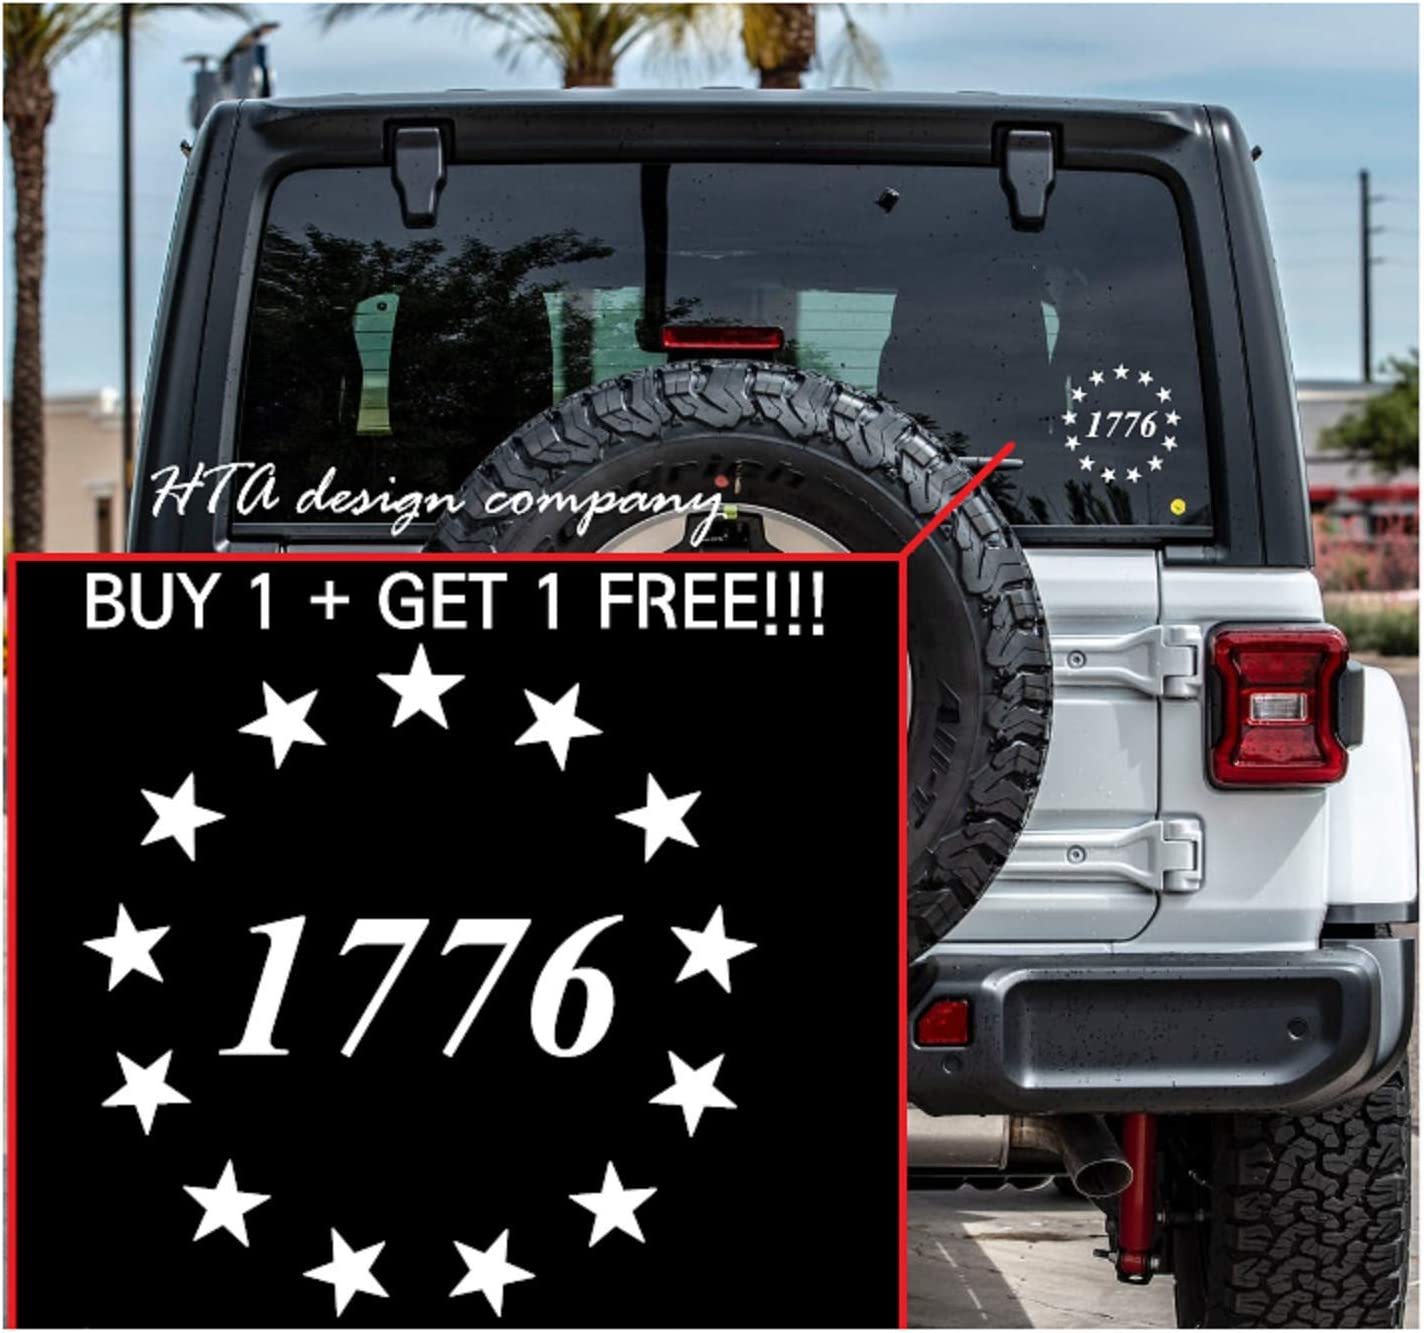 HTA Custom Decal Besty Ross 1776 Stars Die Cut Vinyl Sticker Decal for Car, Truck, Jeep, Window, Motorcycle, Bumper Decal for Laptop, Phone, Home Decoration / 4 in x 4 in/White